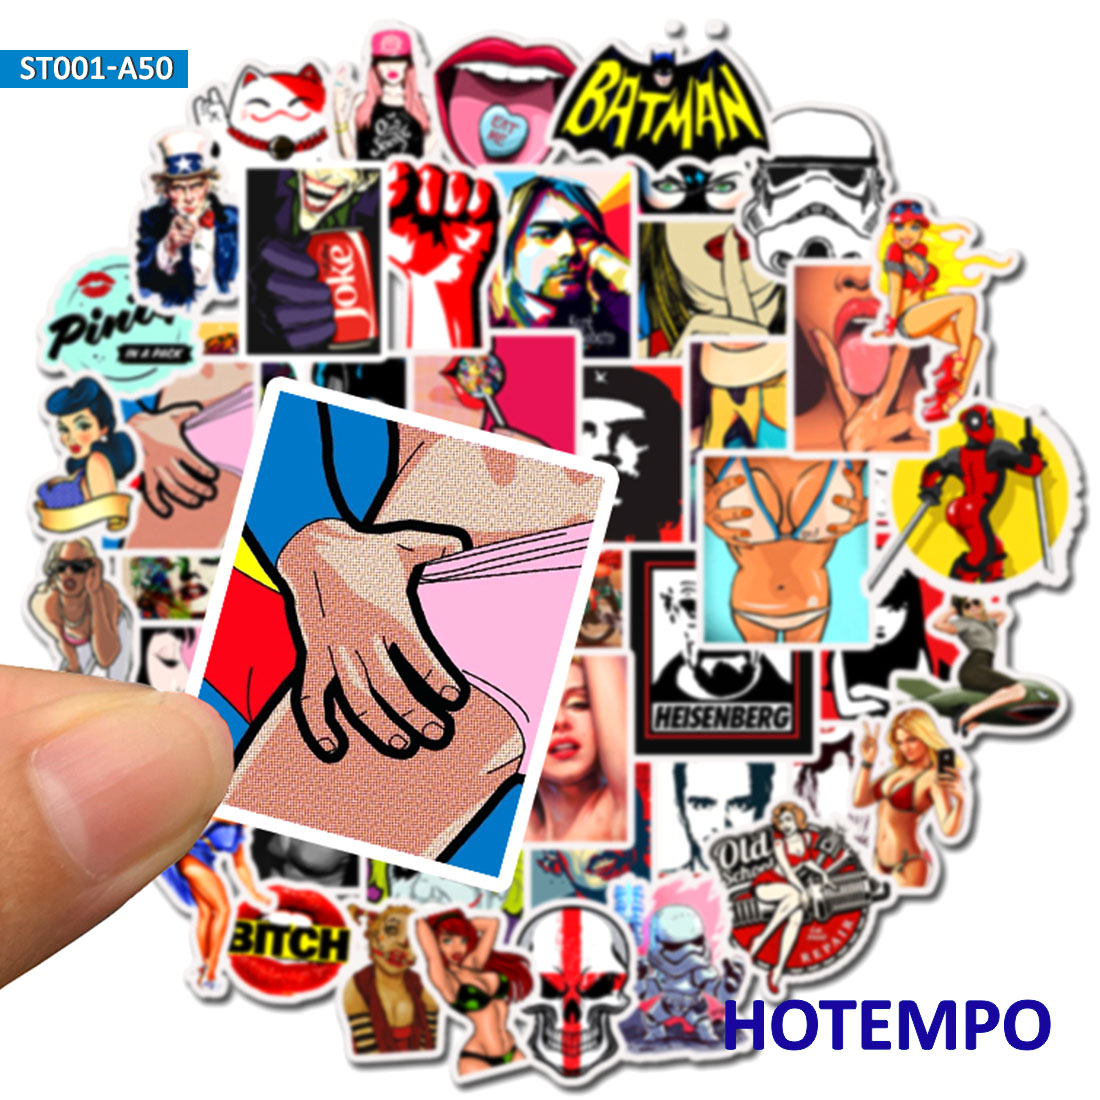 50pcs Mix Sexy Temptation Graffiti Comic Style Fashion Stickers For Mobile Phone Laptop Luggage Case Skateboard Anime Stickers